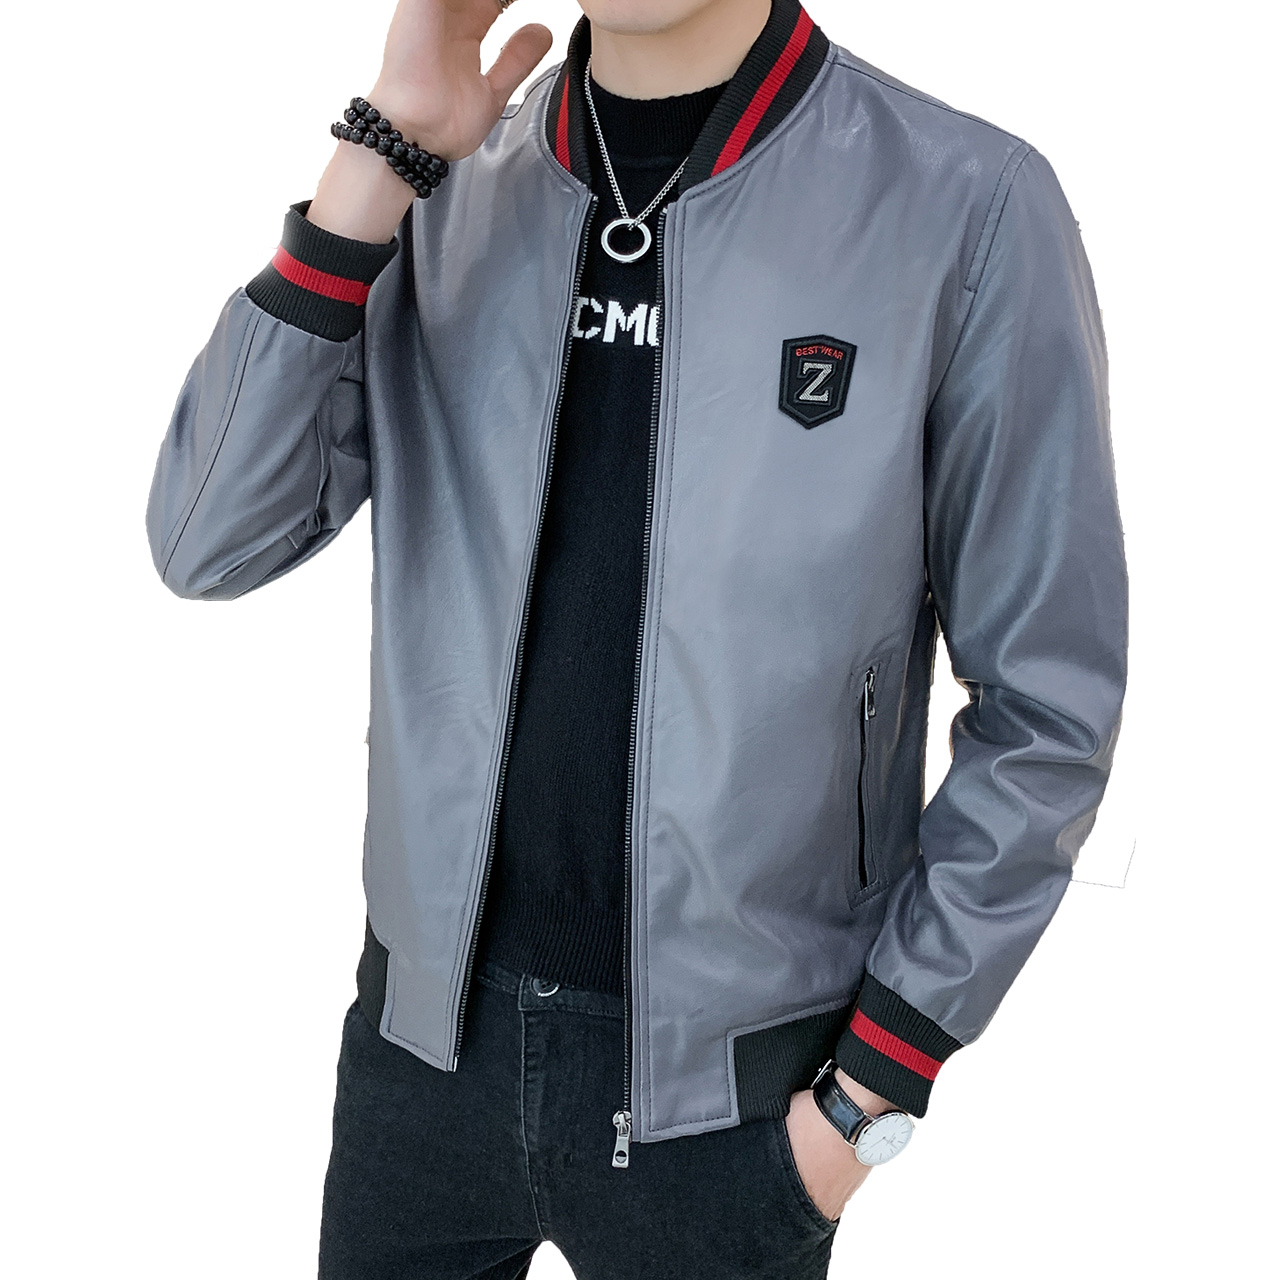 Men's Leather Jacket Slim Fit Men's Winter Jackets Men's Jacket Made Of  Leather Jacket For Men A521-8362